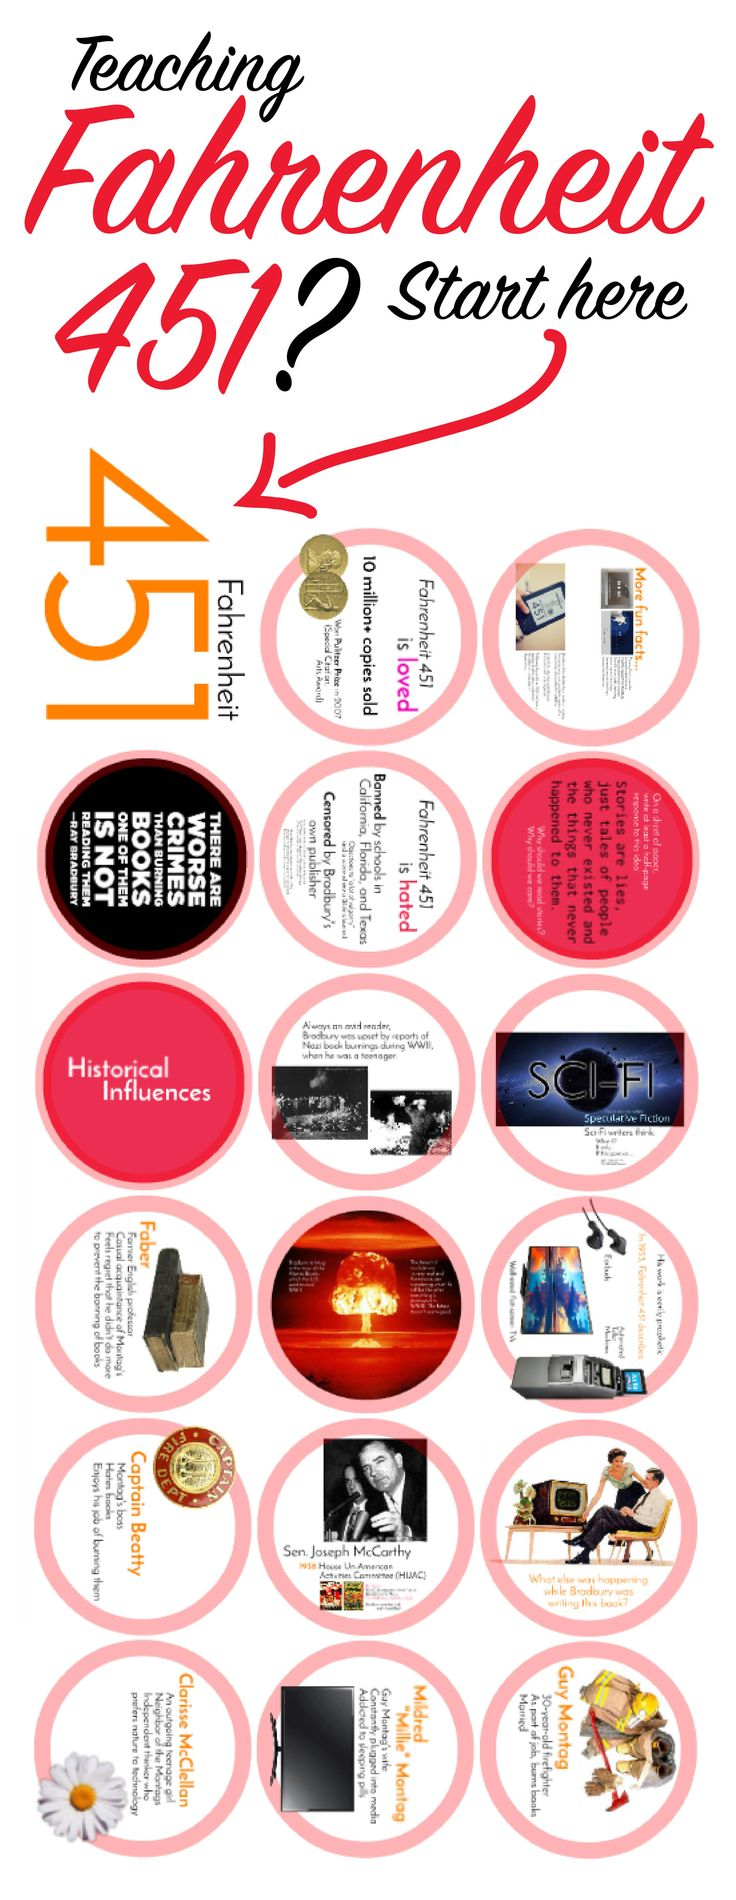 All of the info you need to introduce Ray Bradbury's Fahrenheit 451 to your students. #highschoolEnglish #Fahrenheit451